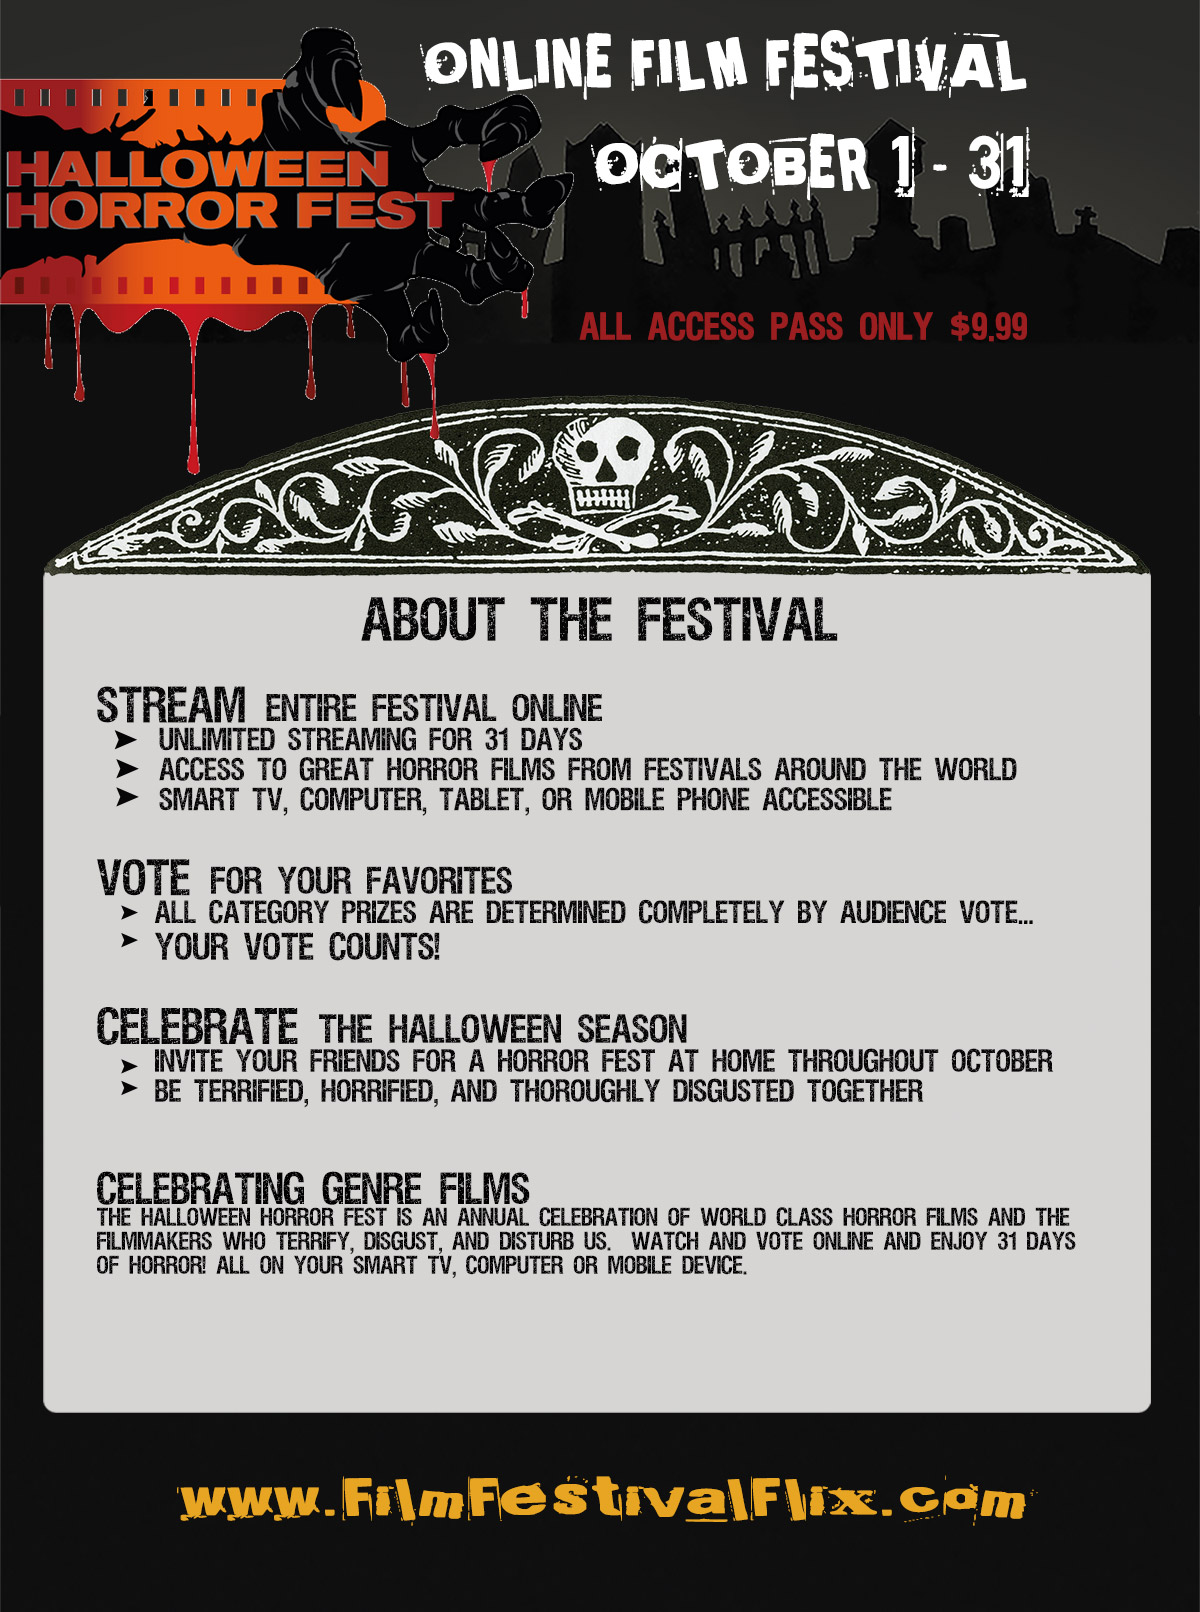 About the 2016 Halloween Horror Fest